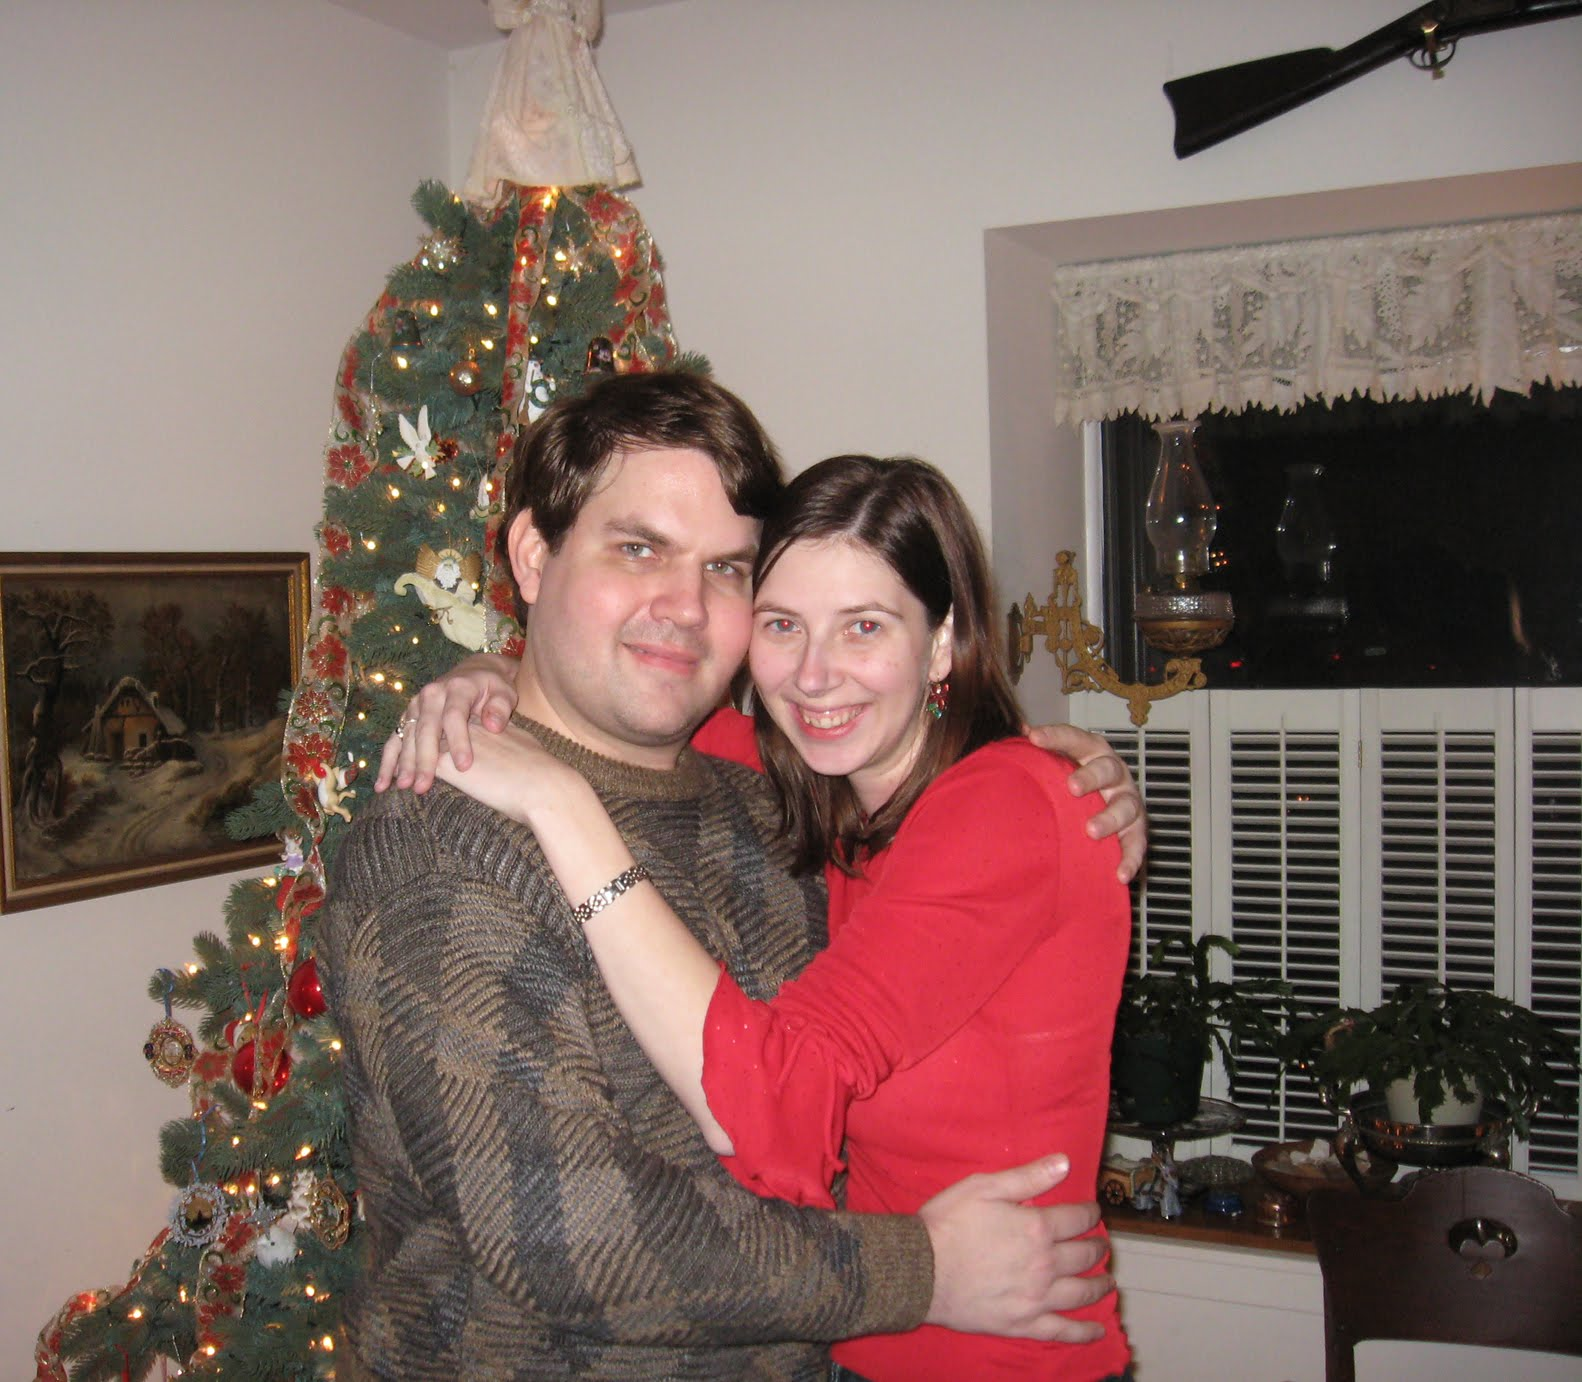 Our first Christmas together ~ The Knight Shift